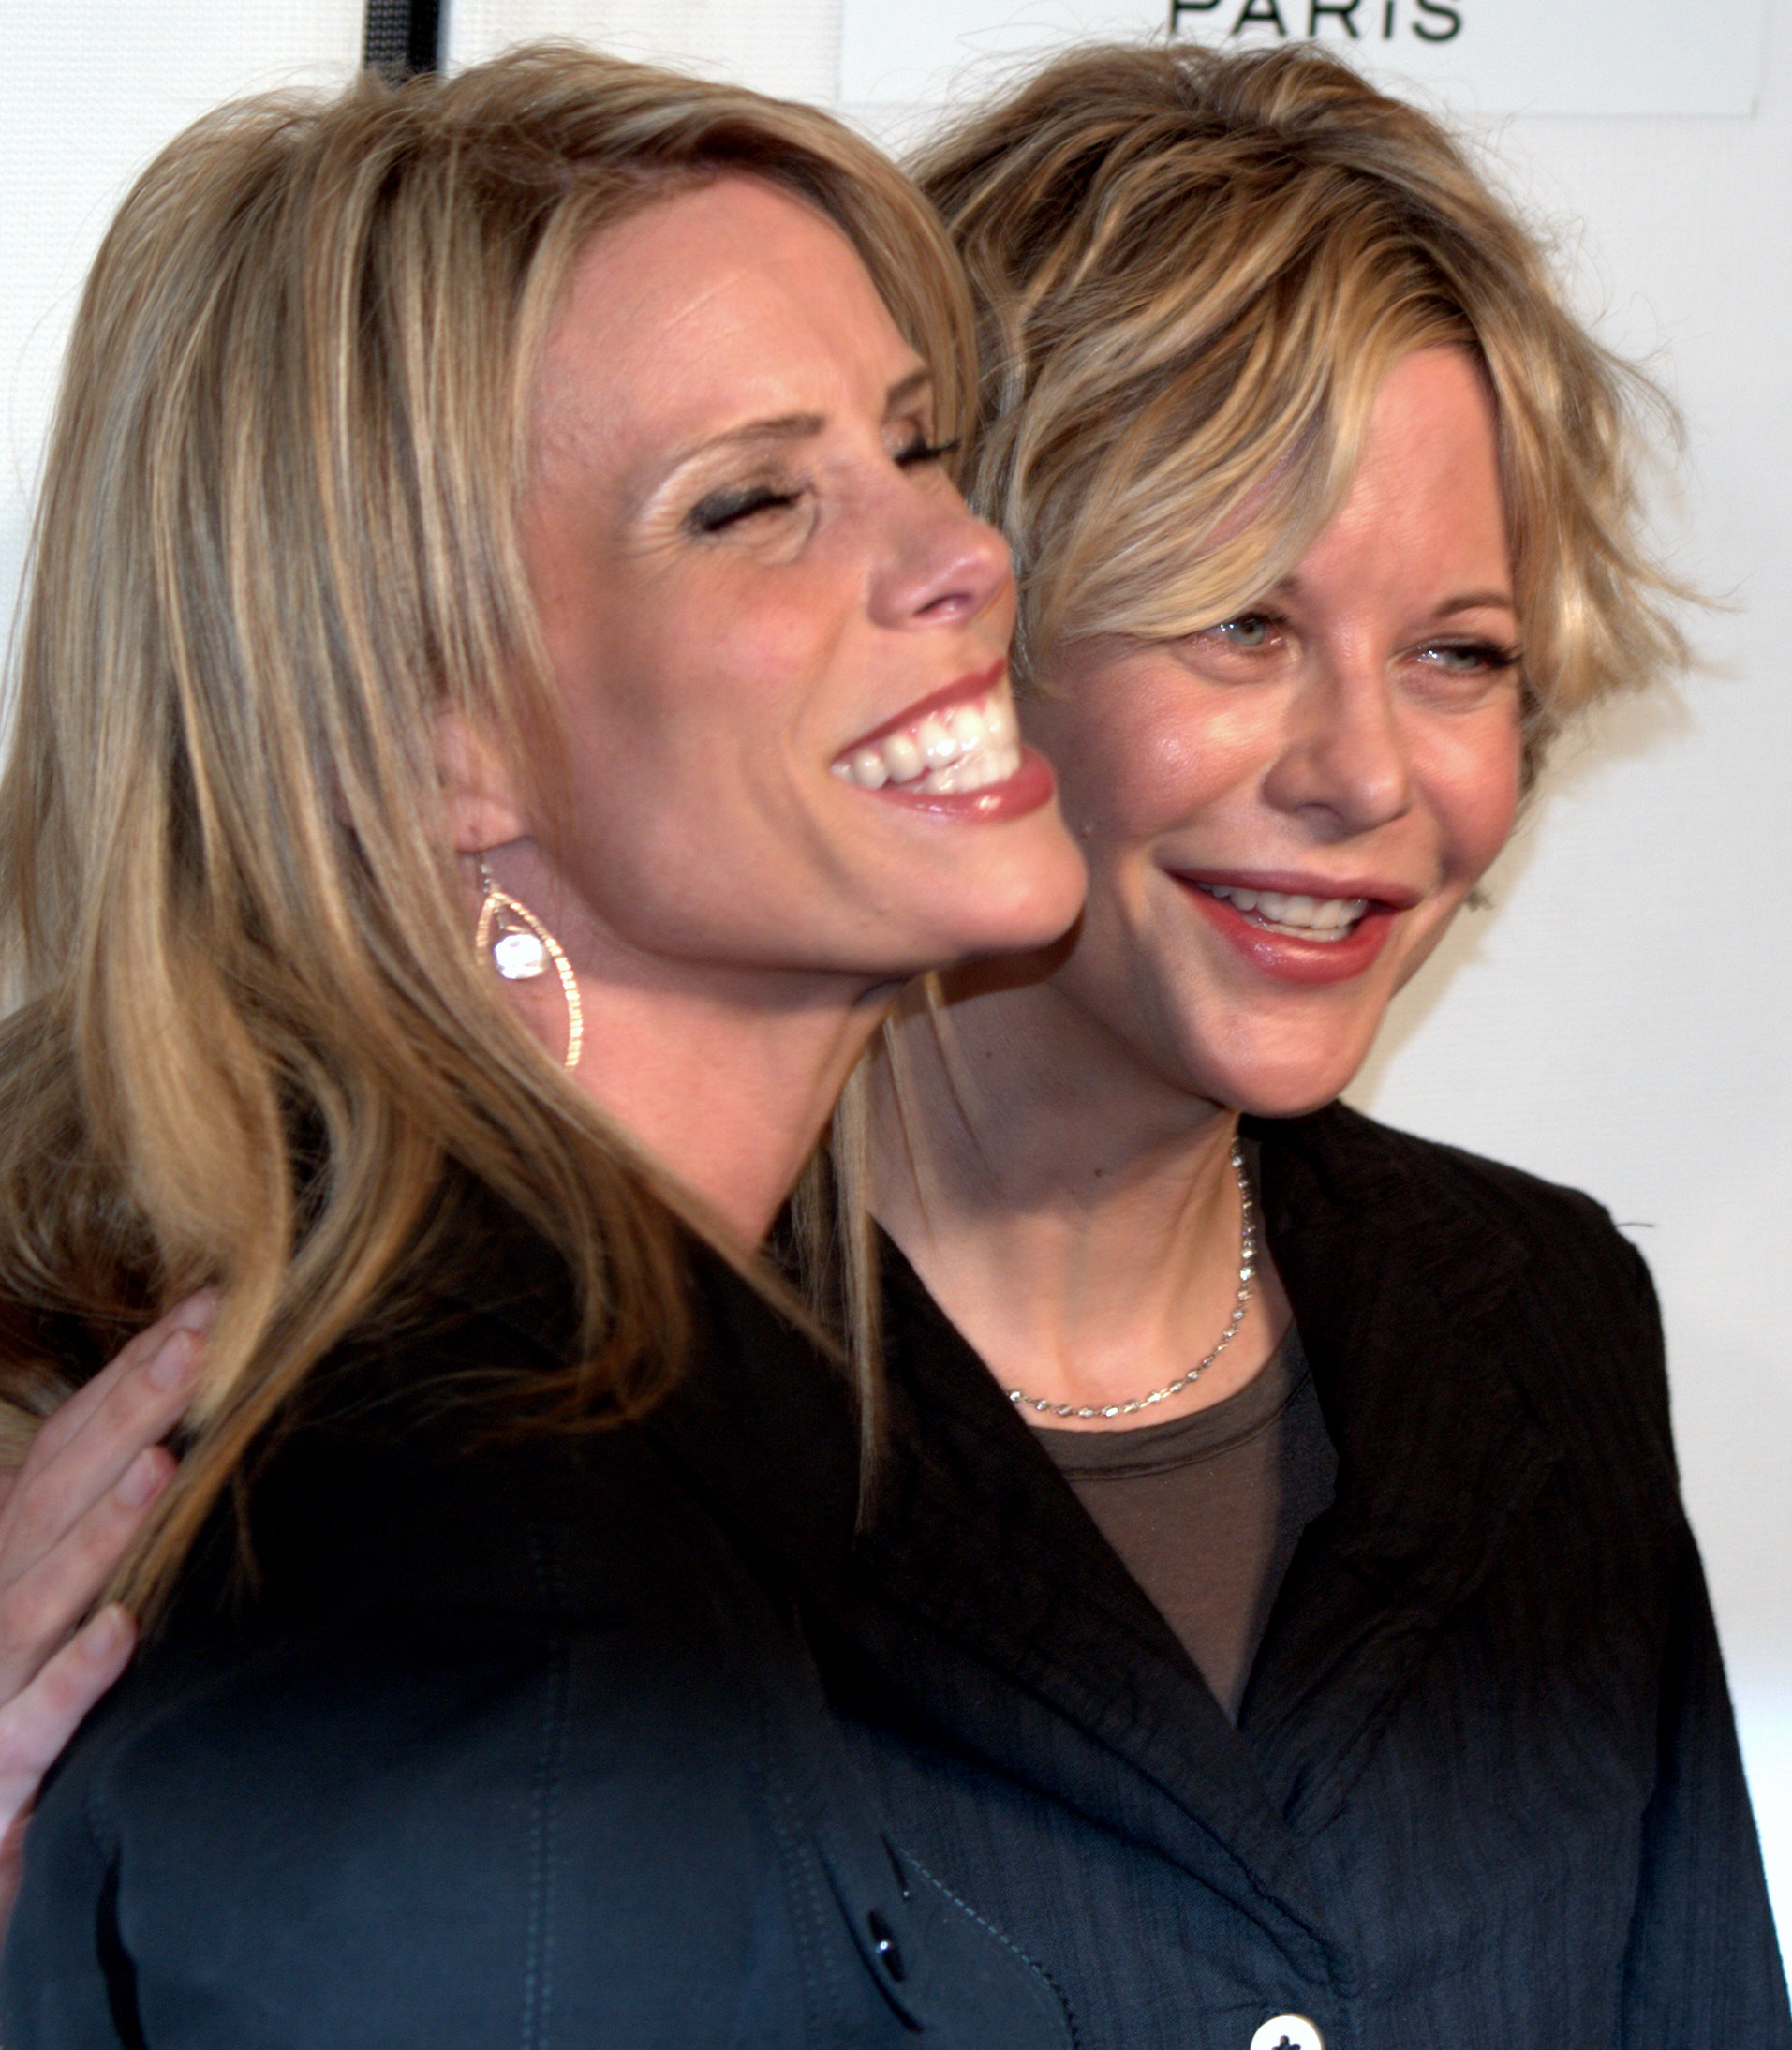 Forum on this topic: Leslie Winston, cheryl-hines-born-september-21-1965-age/